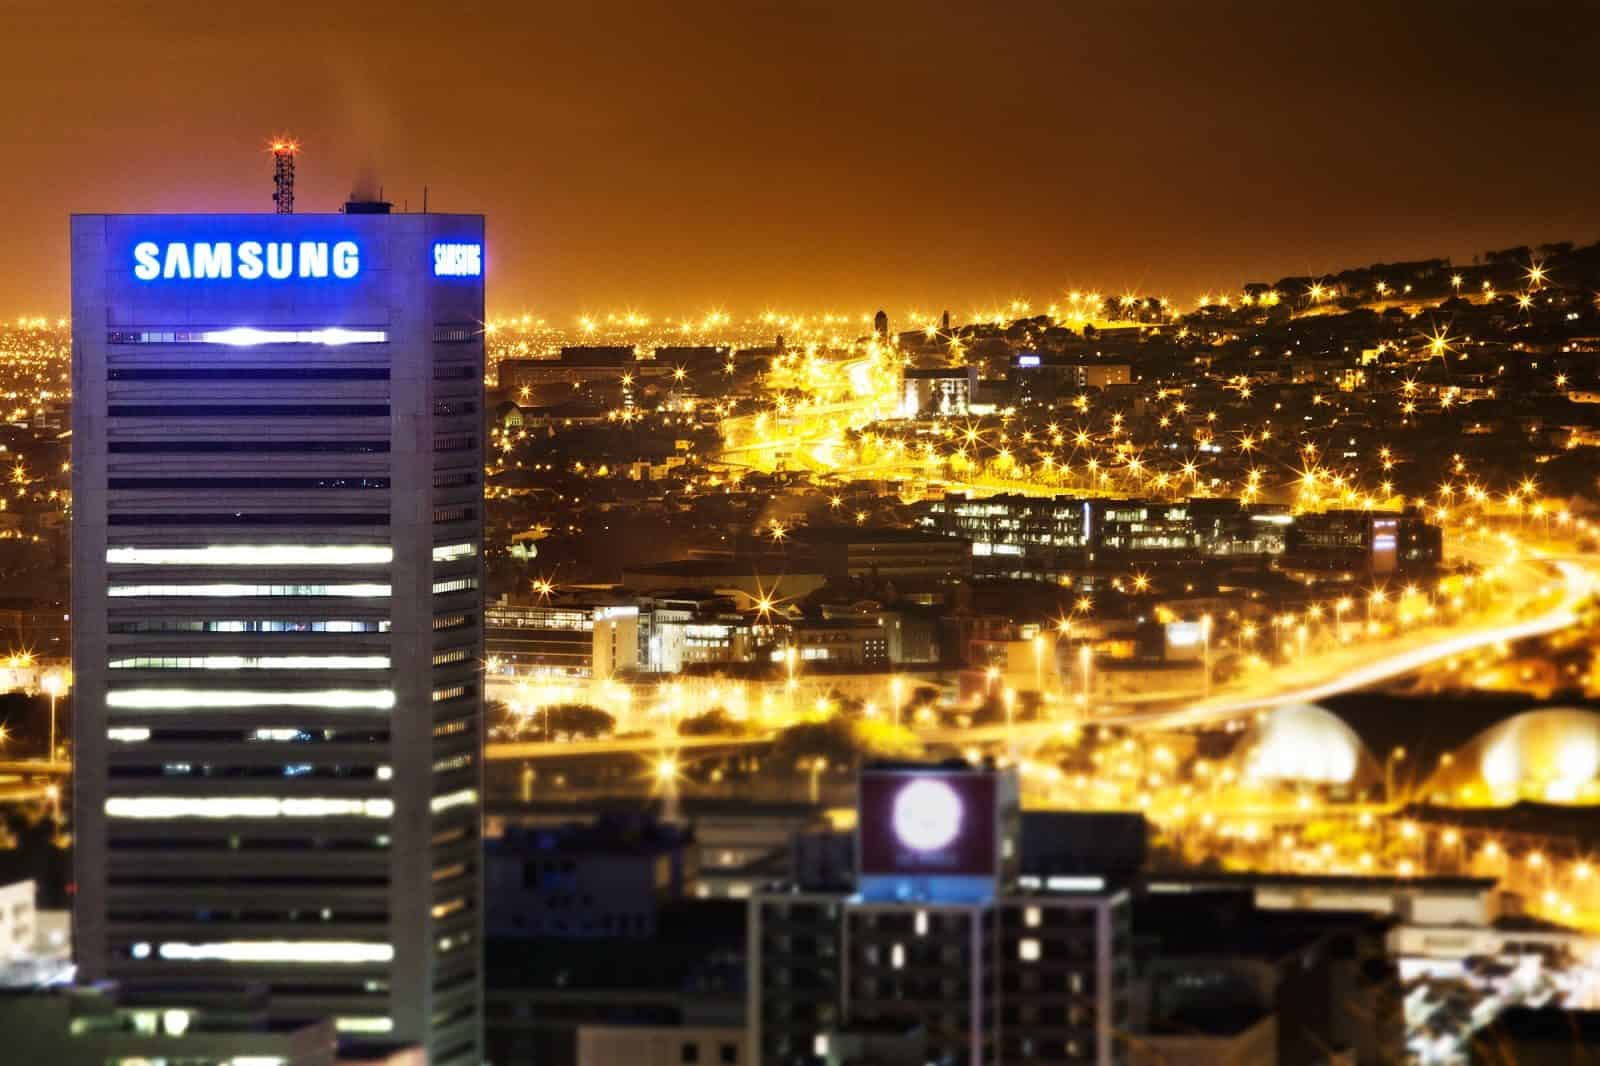 Samsung building night